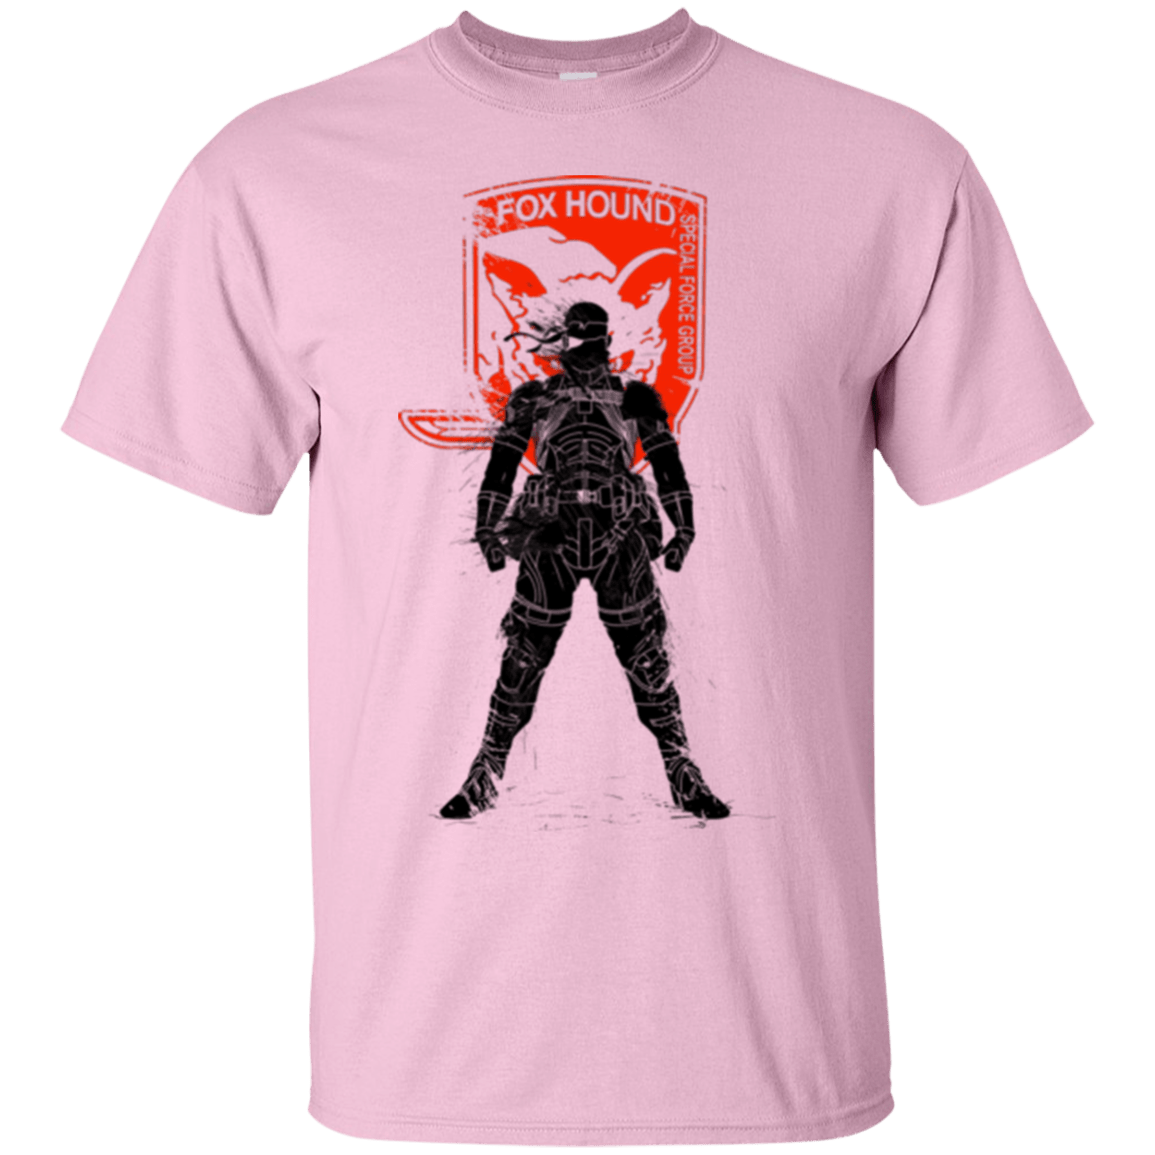 T-Shirts Light Pink / Small Fox Hound (1) T-Shirt